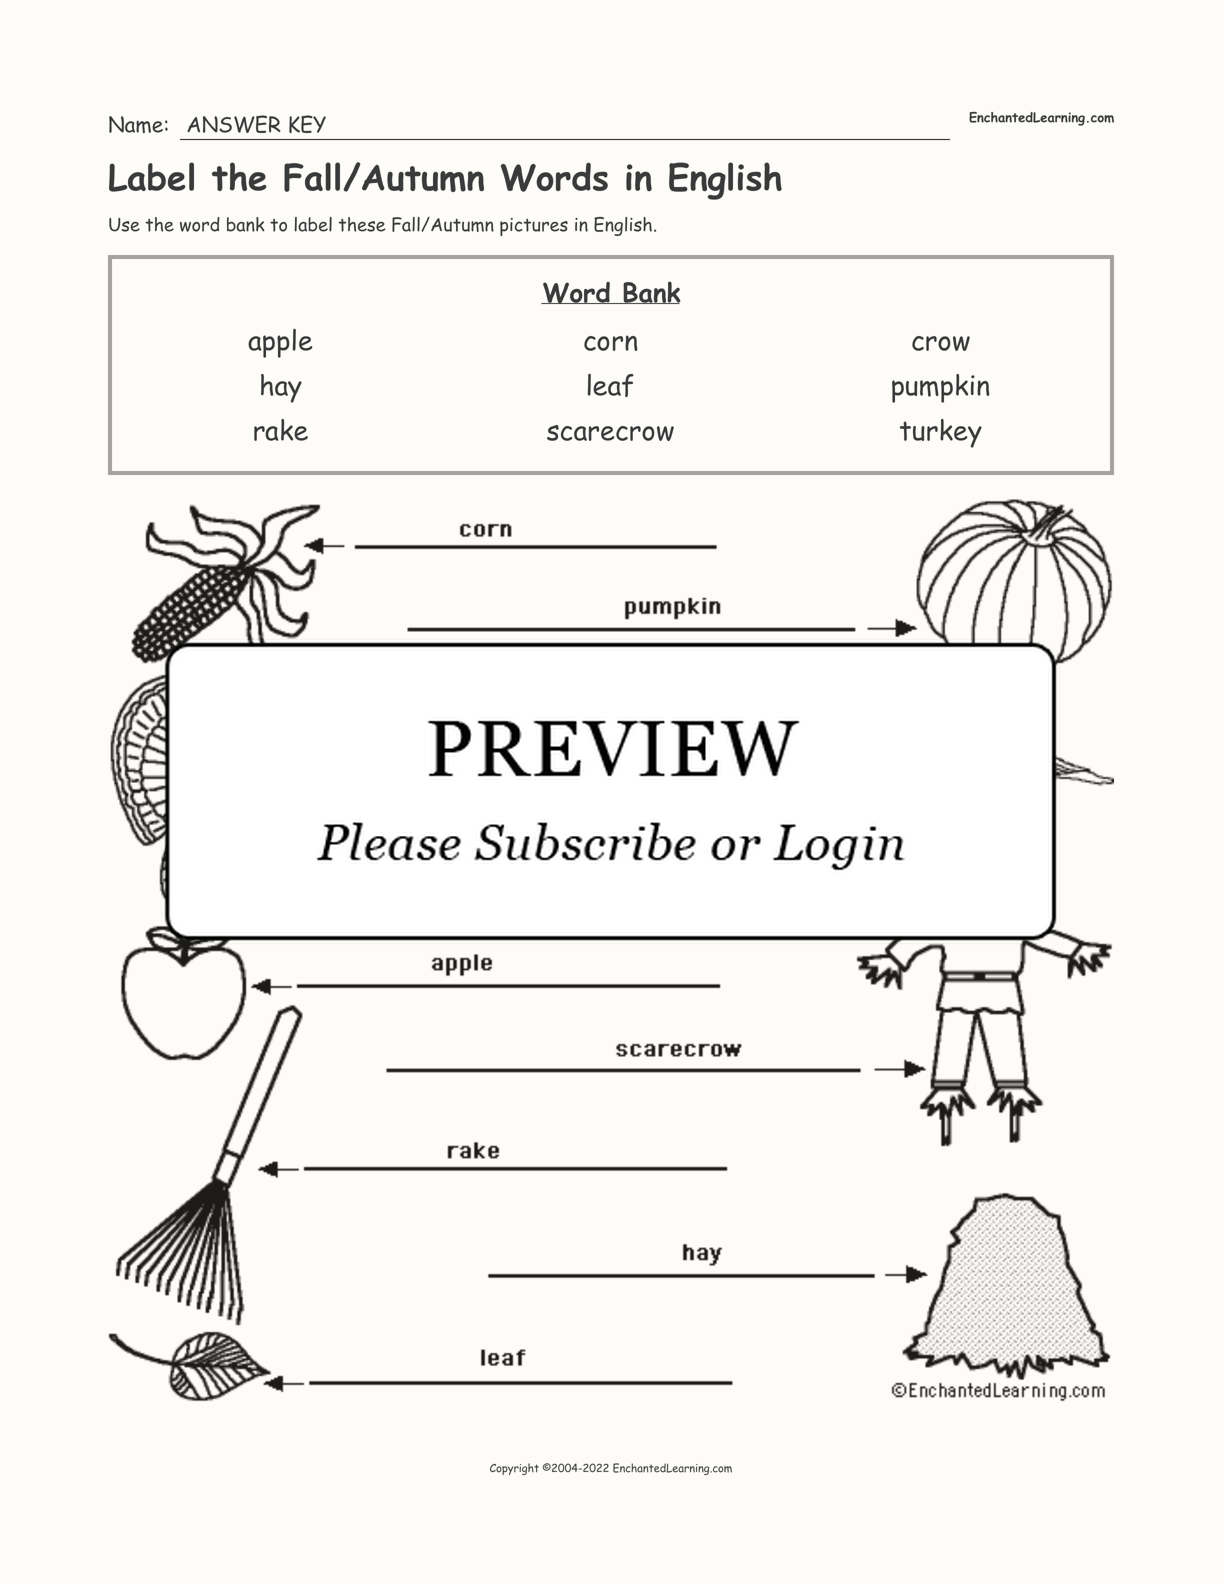 Label the Fall/Autumn Words in English interactive worksheet page 2